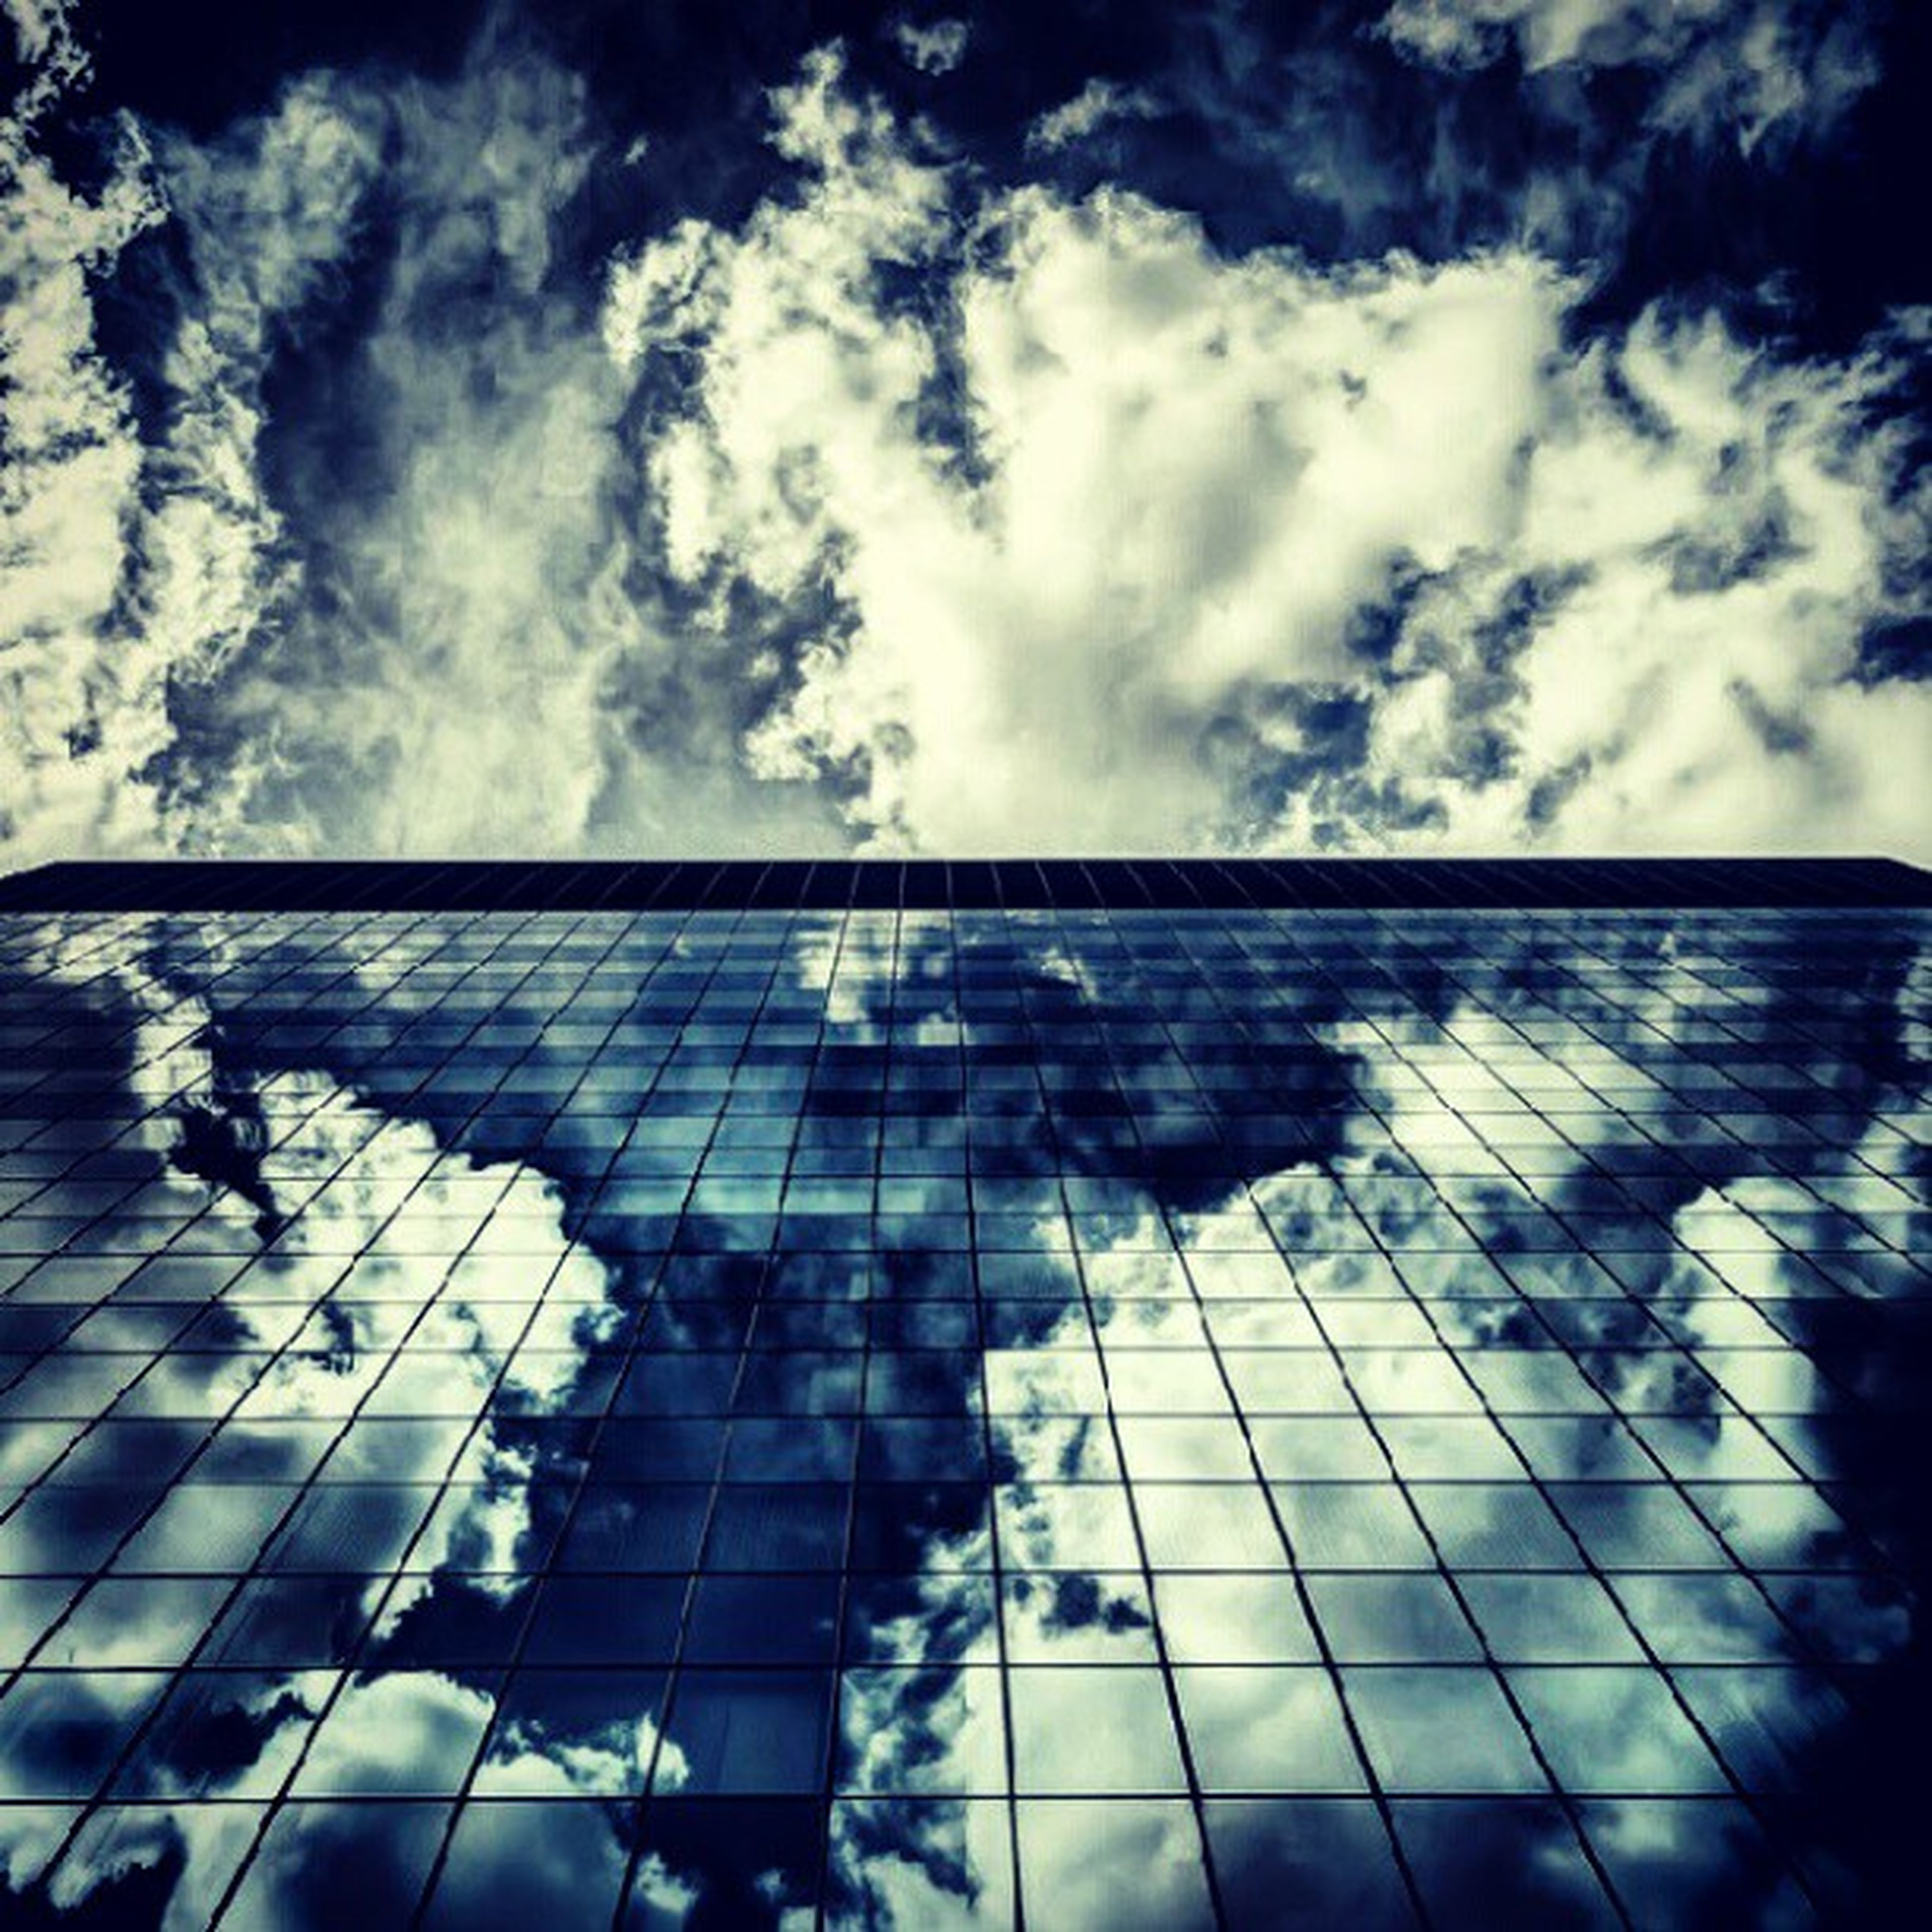 sky, cloud - sky, architecture, built structure, building exterior, low angle view, cloudy, cloud, reflection, pattern, glass - material, day, building, sunlight, outdoors, window, no people, wall - building feature, modern, weather